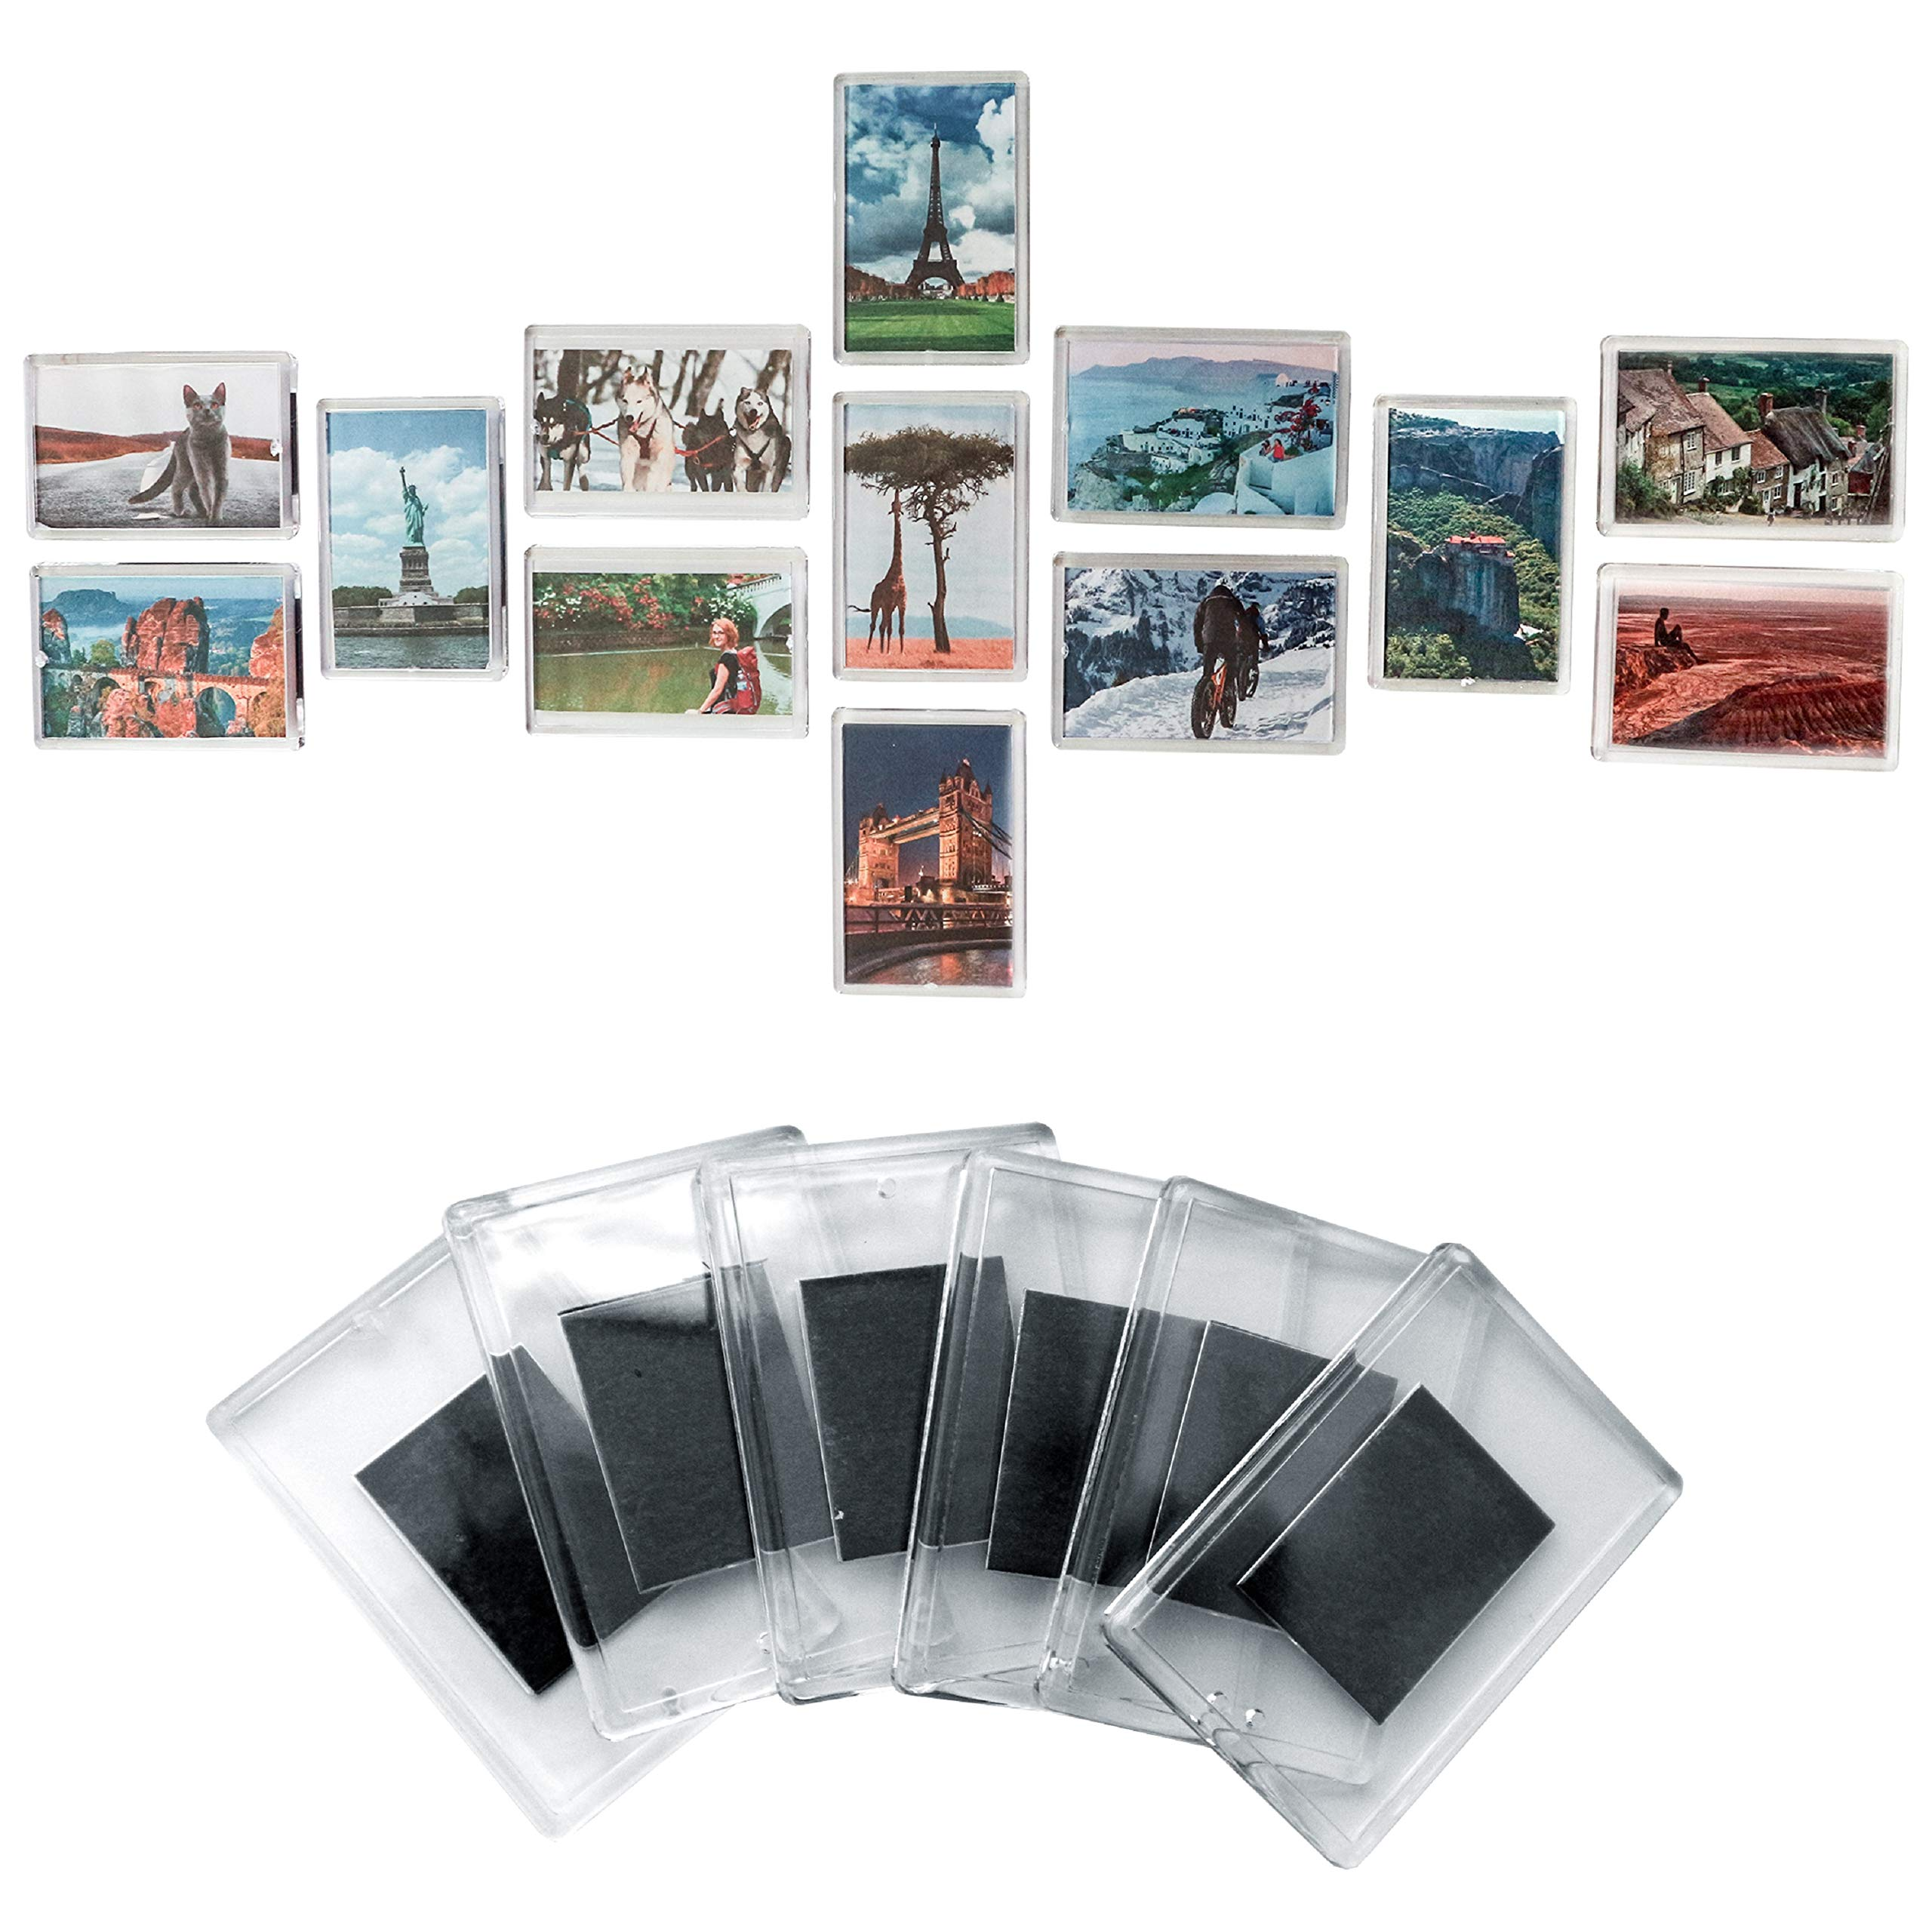 Magnetic Frame (20 Pack) - 2.7 x 1.7 inch Blank Photo Frame for Refrigerator - Clear Acrylic Frames - Fridge Magnets with Photo Insert - Magnetic Picture Frames to Display Family Photos and Art Work